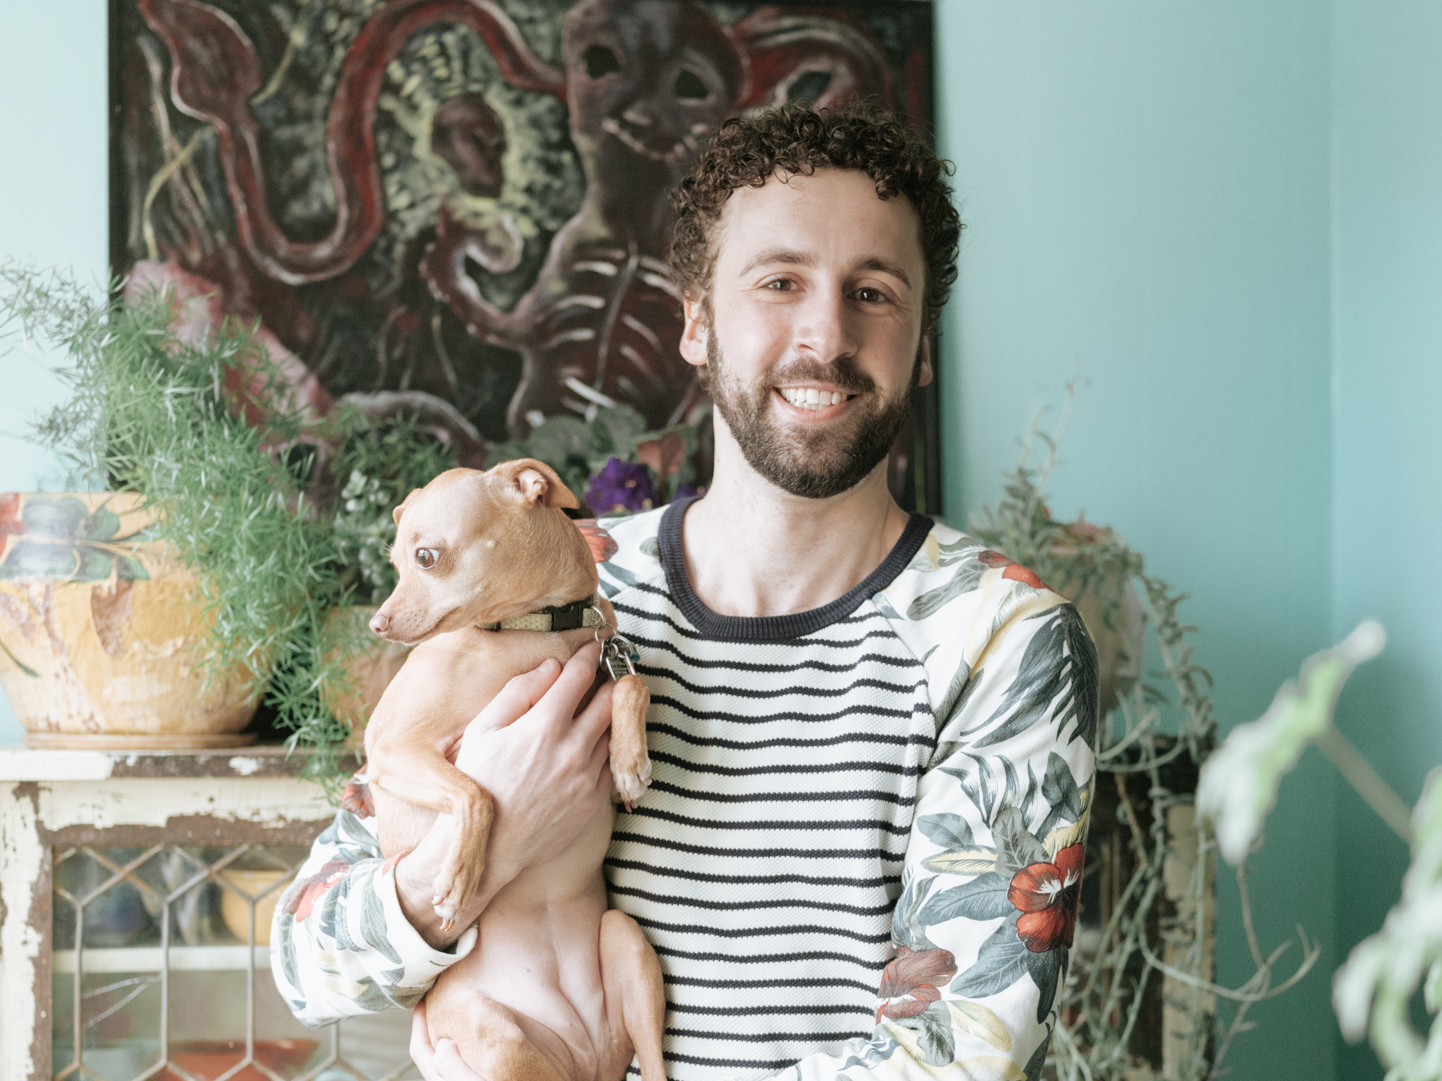 Meet Matt Mirarchi! - Our first home tour takes us inside the home (dubbed gay gardens) of this local Seattleite.